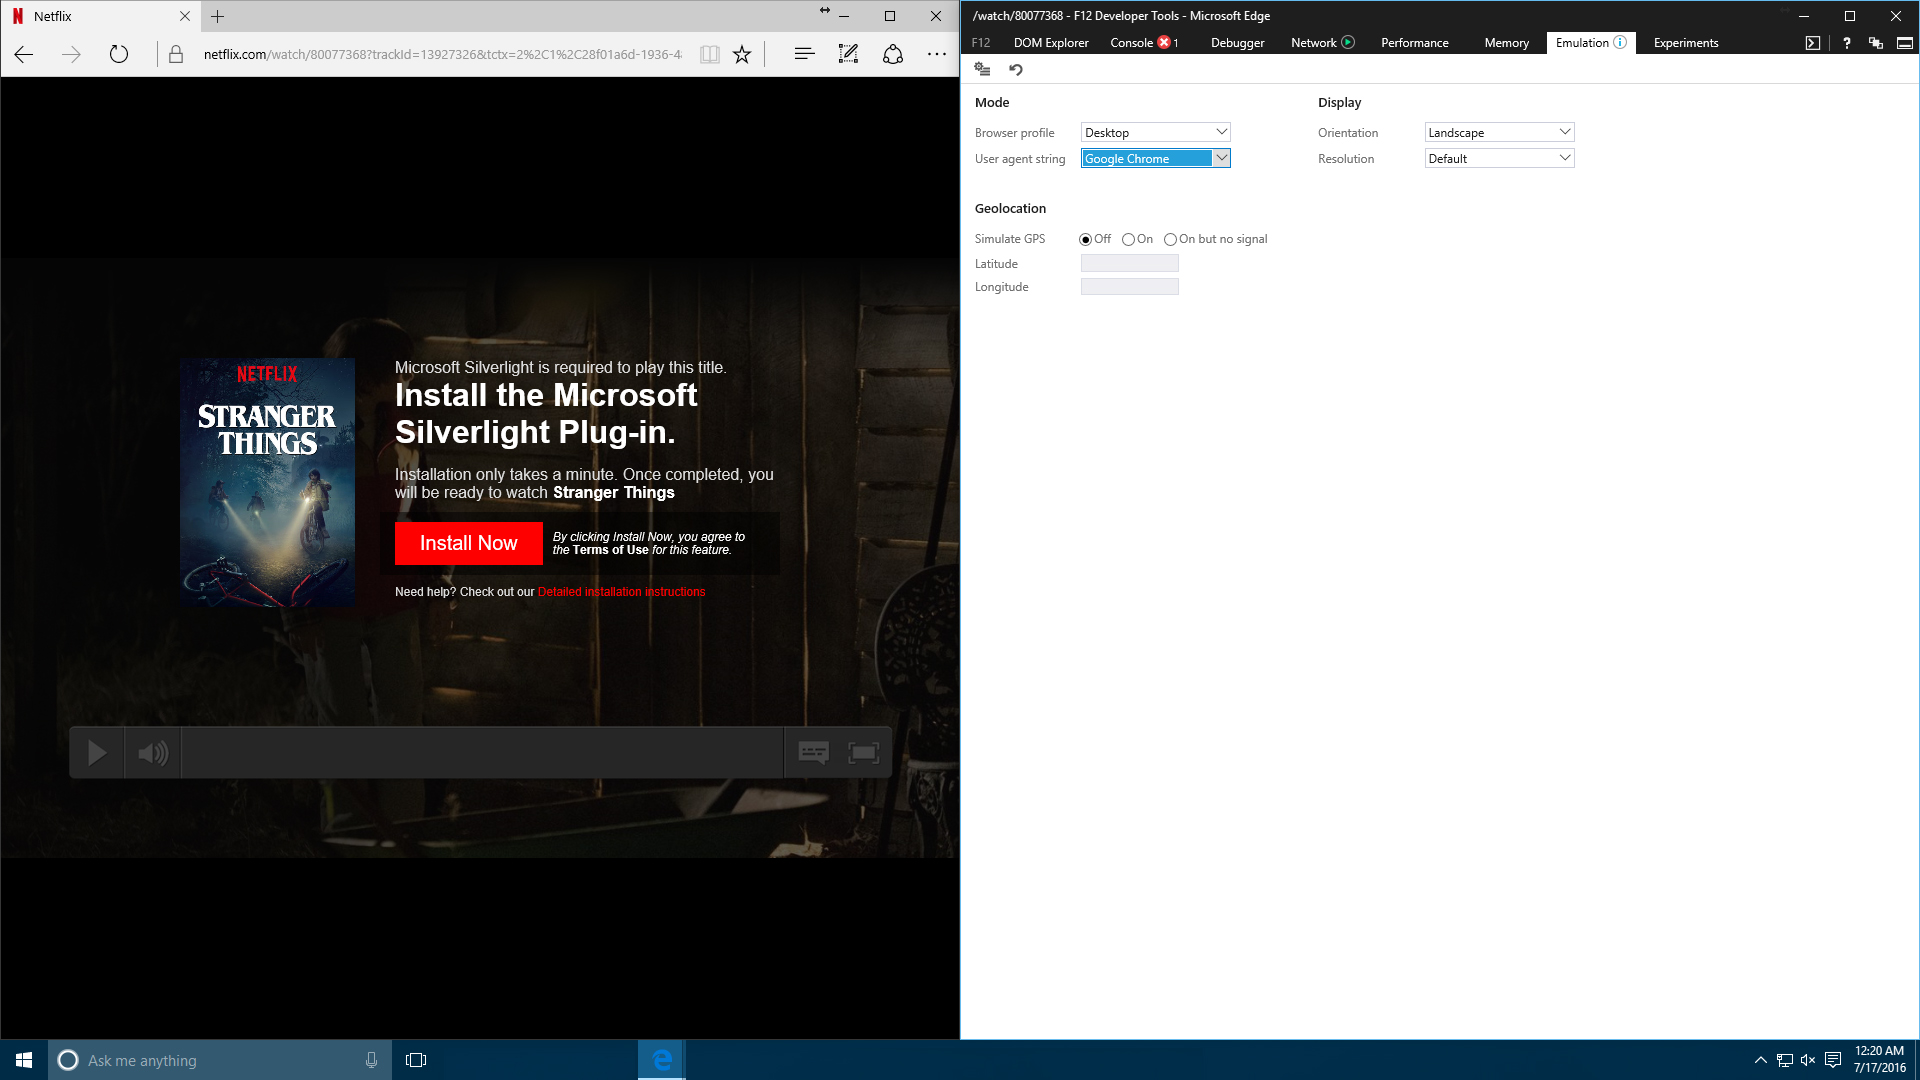 Microsoft is the Only Option for HD Netflix in the Browser